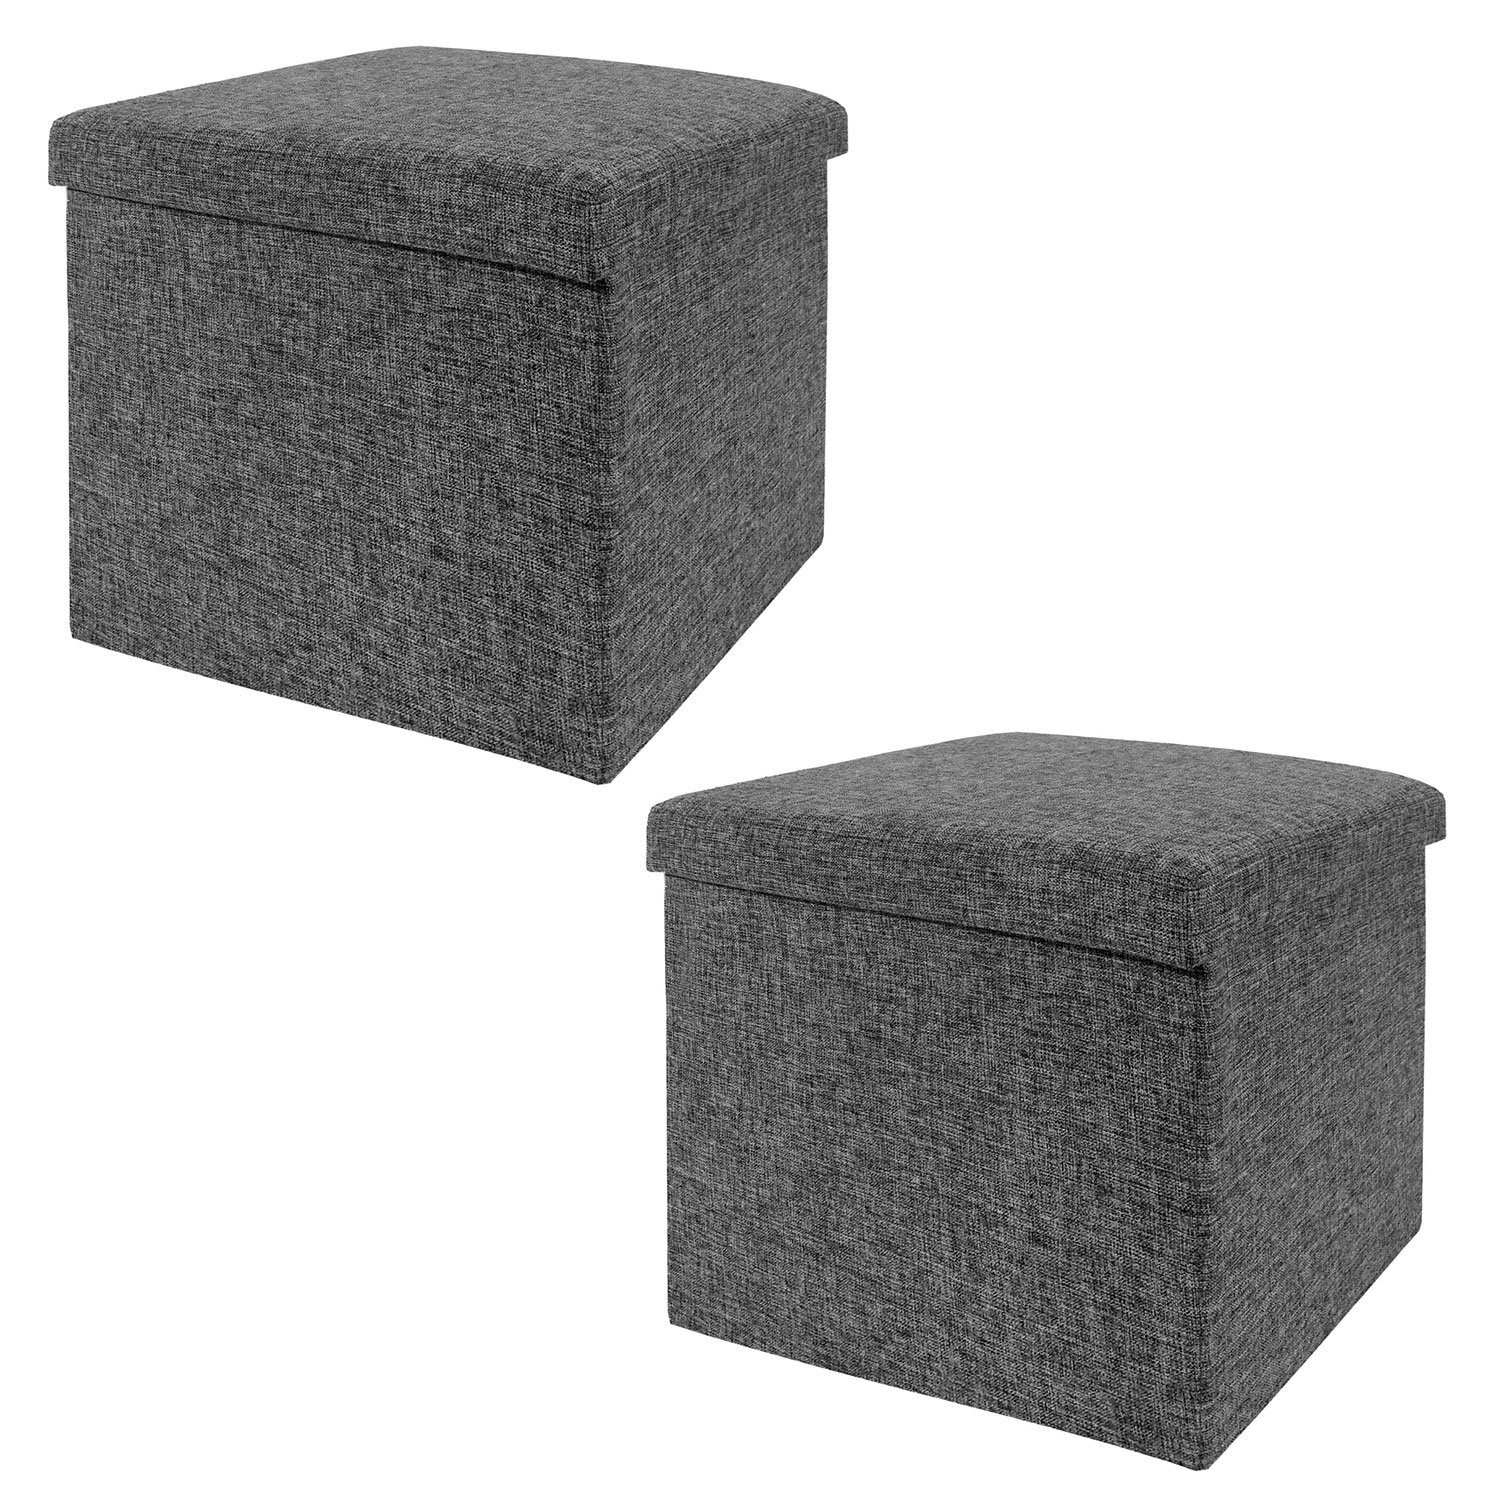 Seville Classics Foldable Storage Ottoman, Charcoal Gray (2 Pack) WEB291